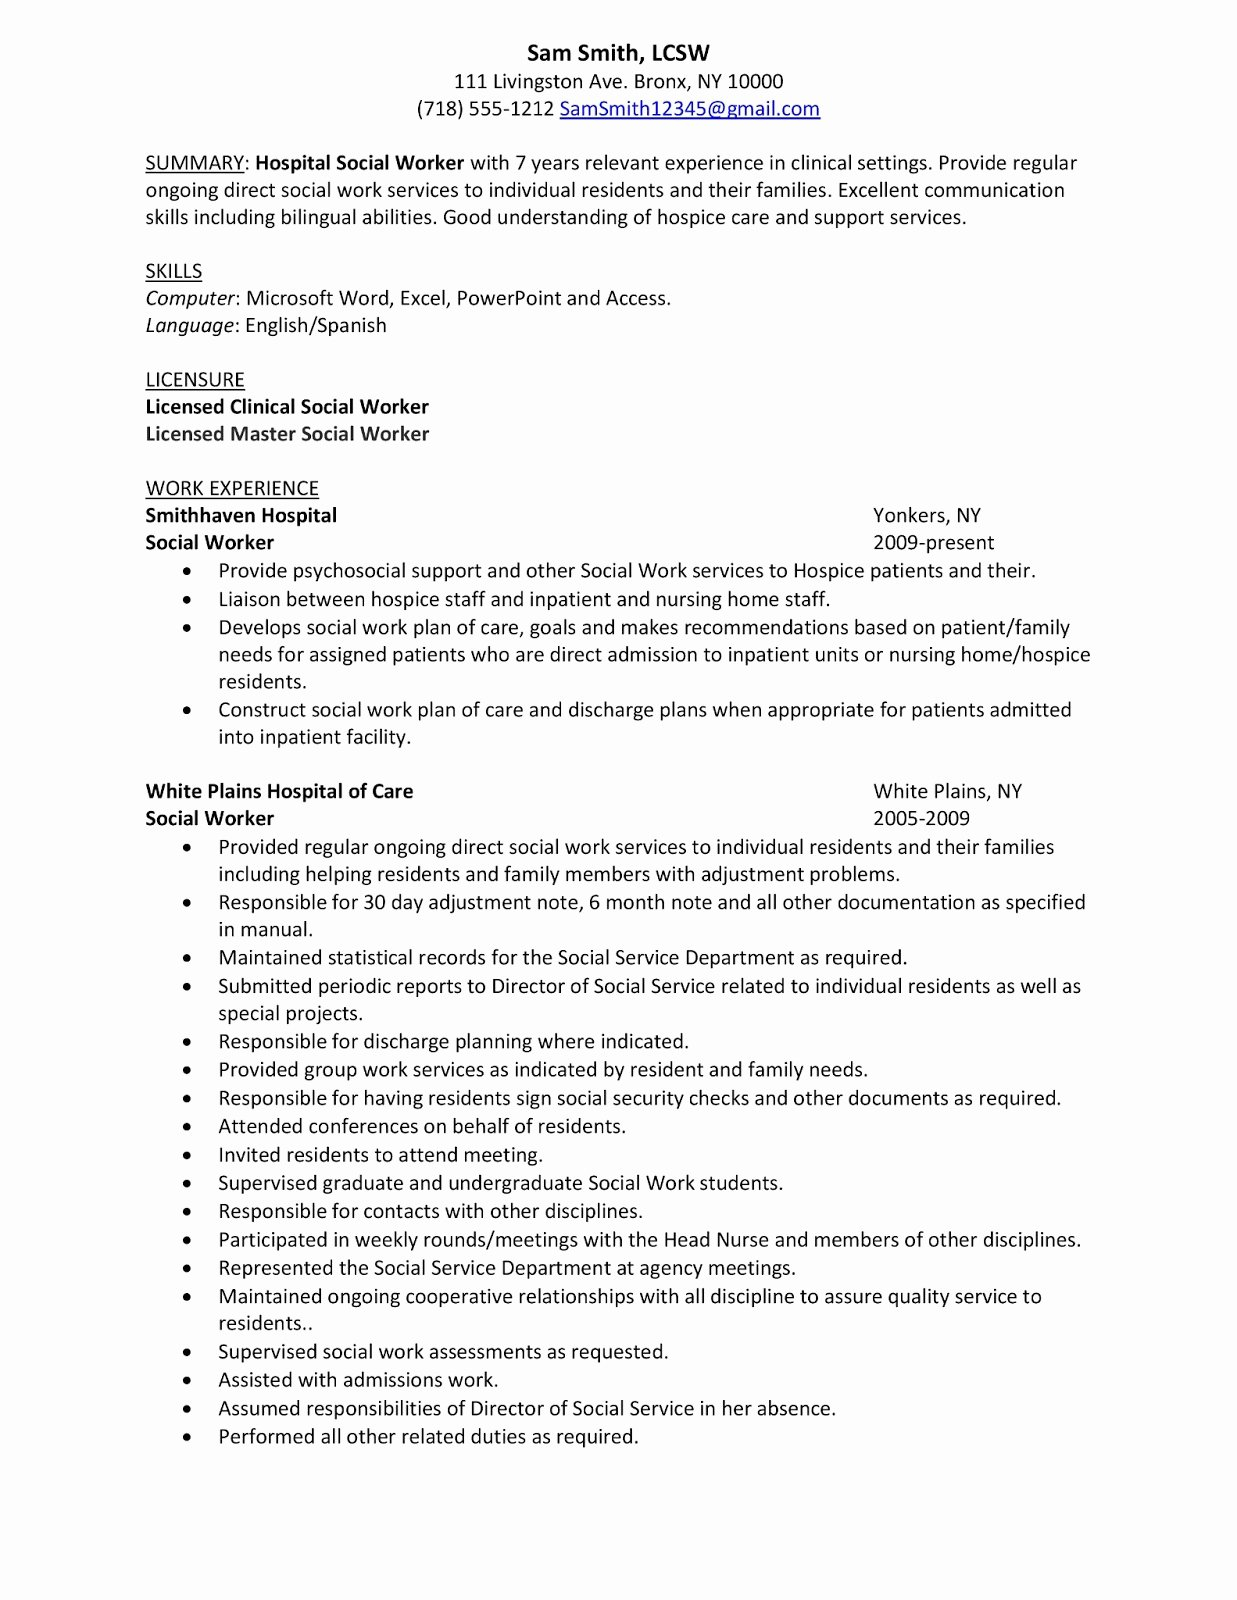 Summary Sample Hospital social Work Resume Examples with